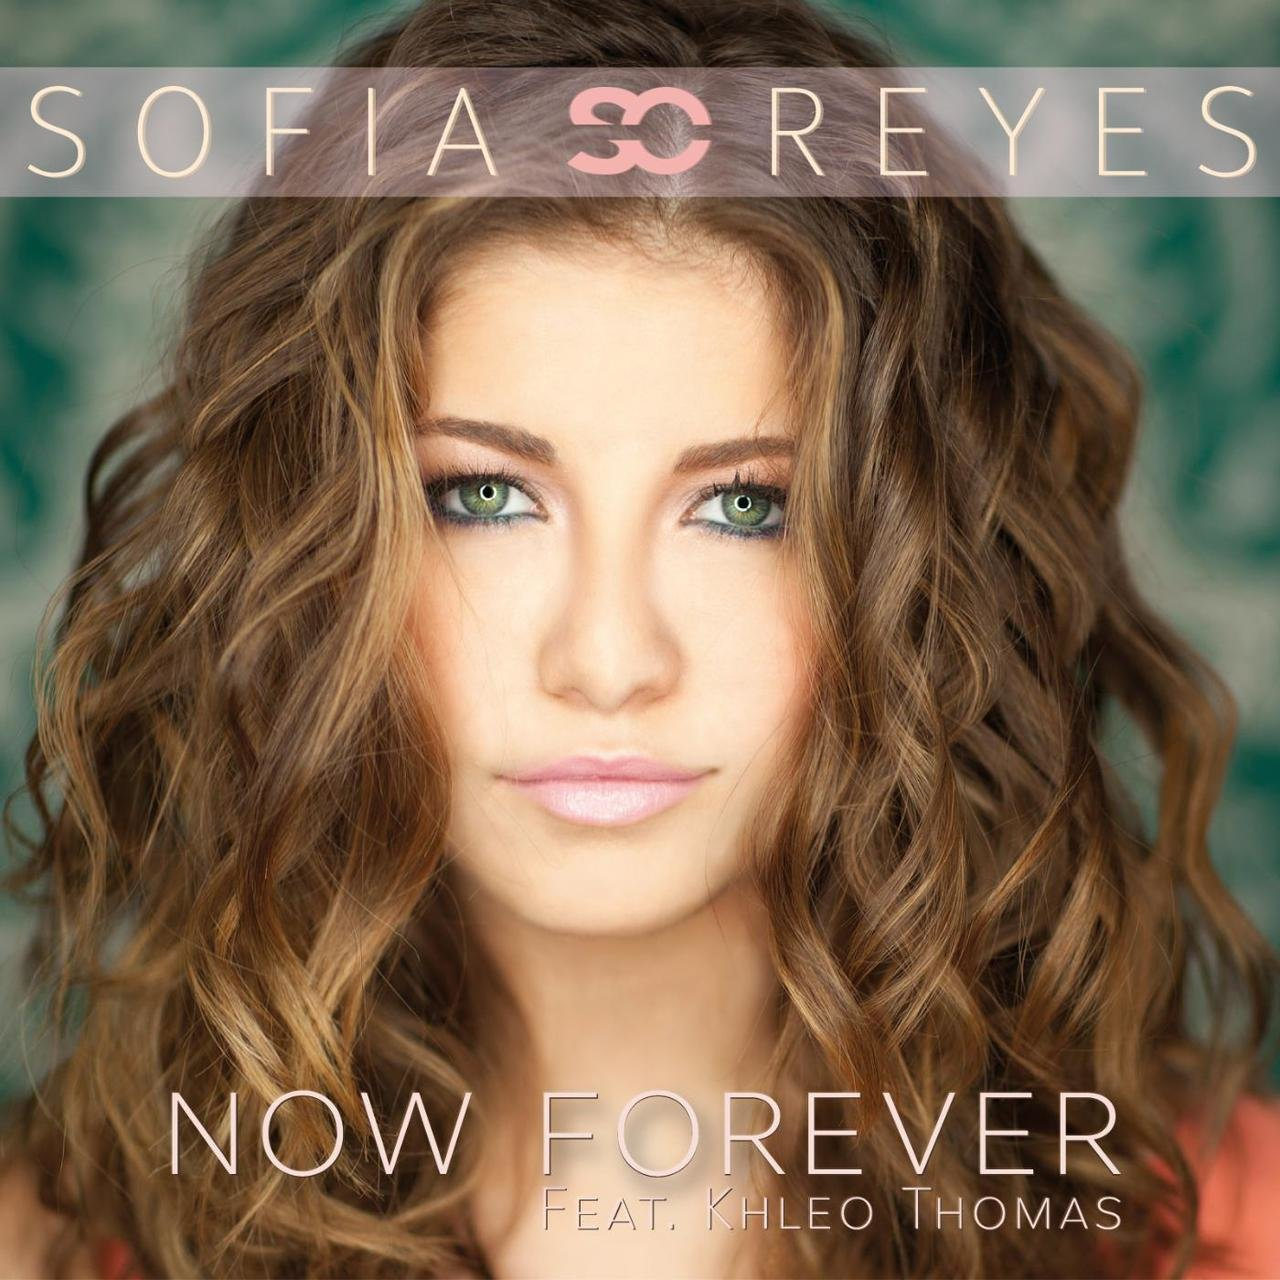 Now Forever (feat. Khleo Thomas)